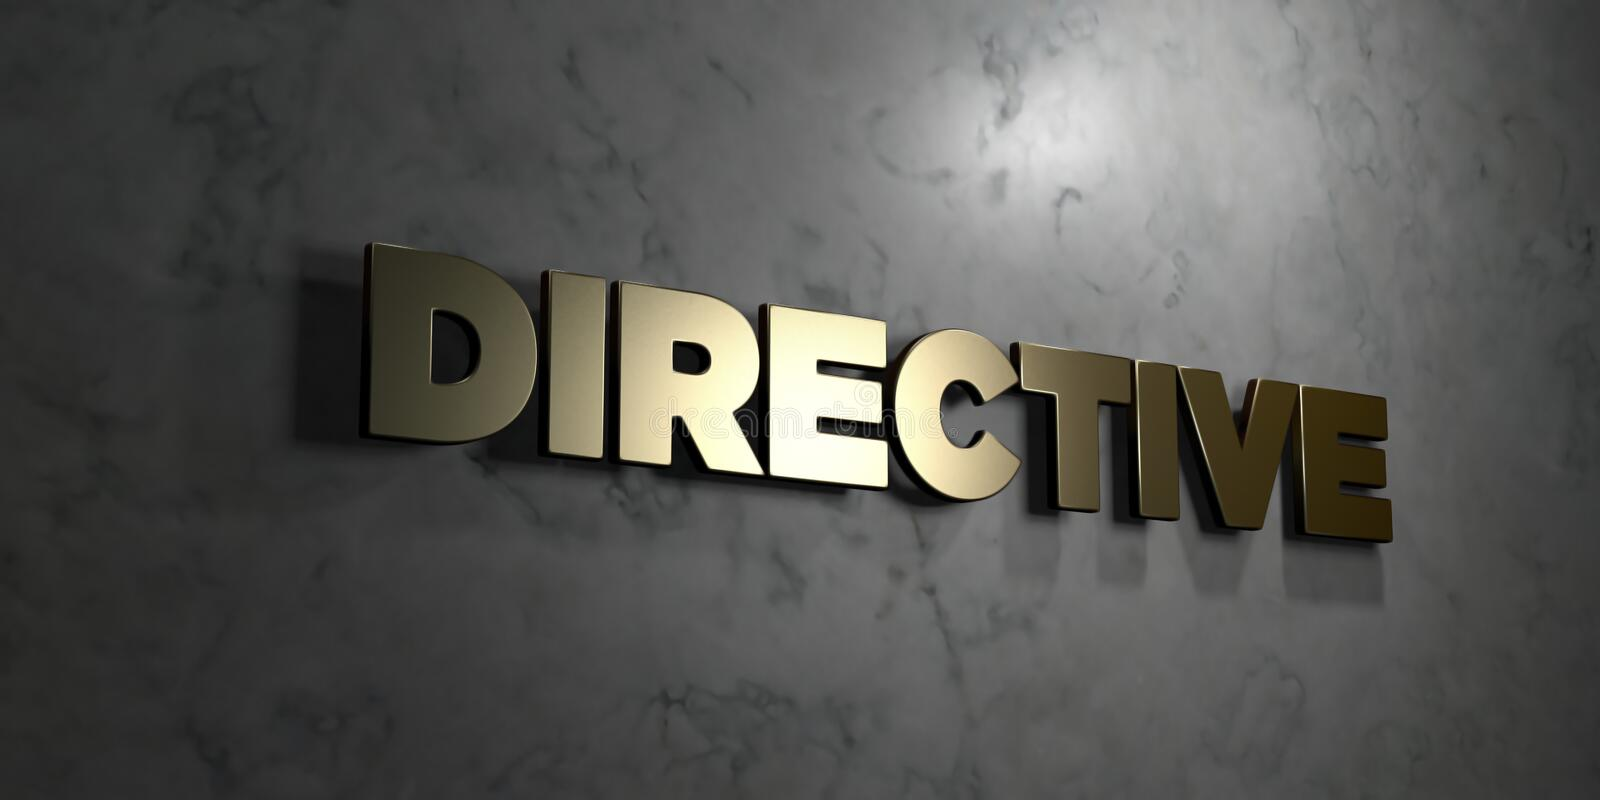 Directive - Gold text on black background - 3D rendered royalty free stock picture. This image can be used for an online website banner ad or a print postcard vector illustration